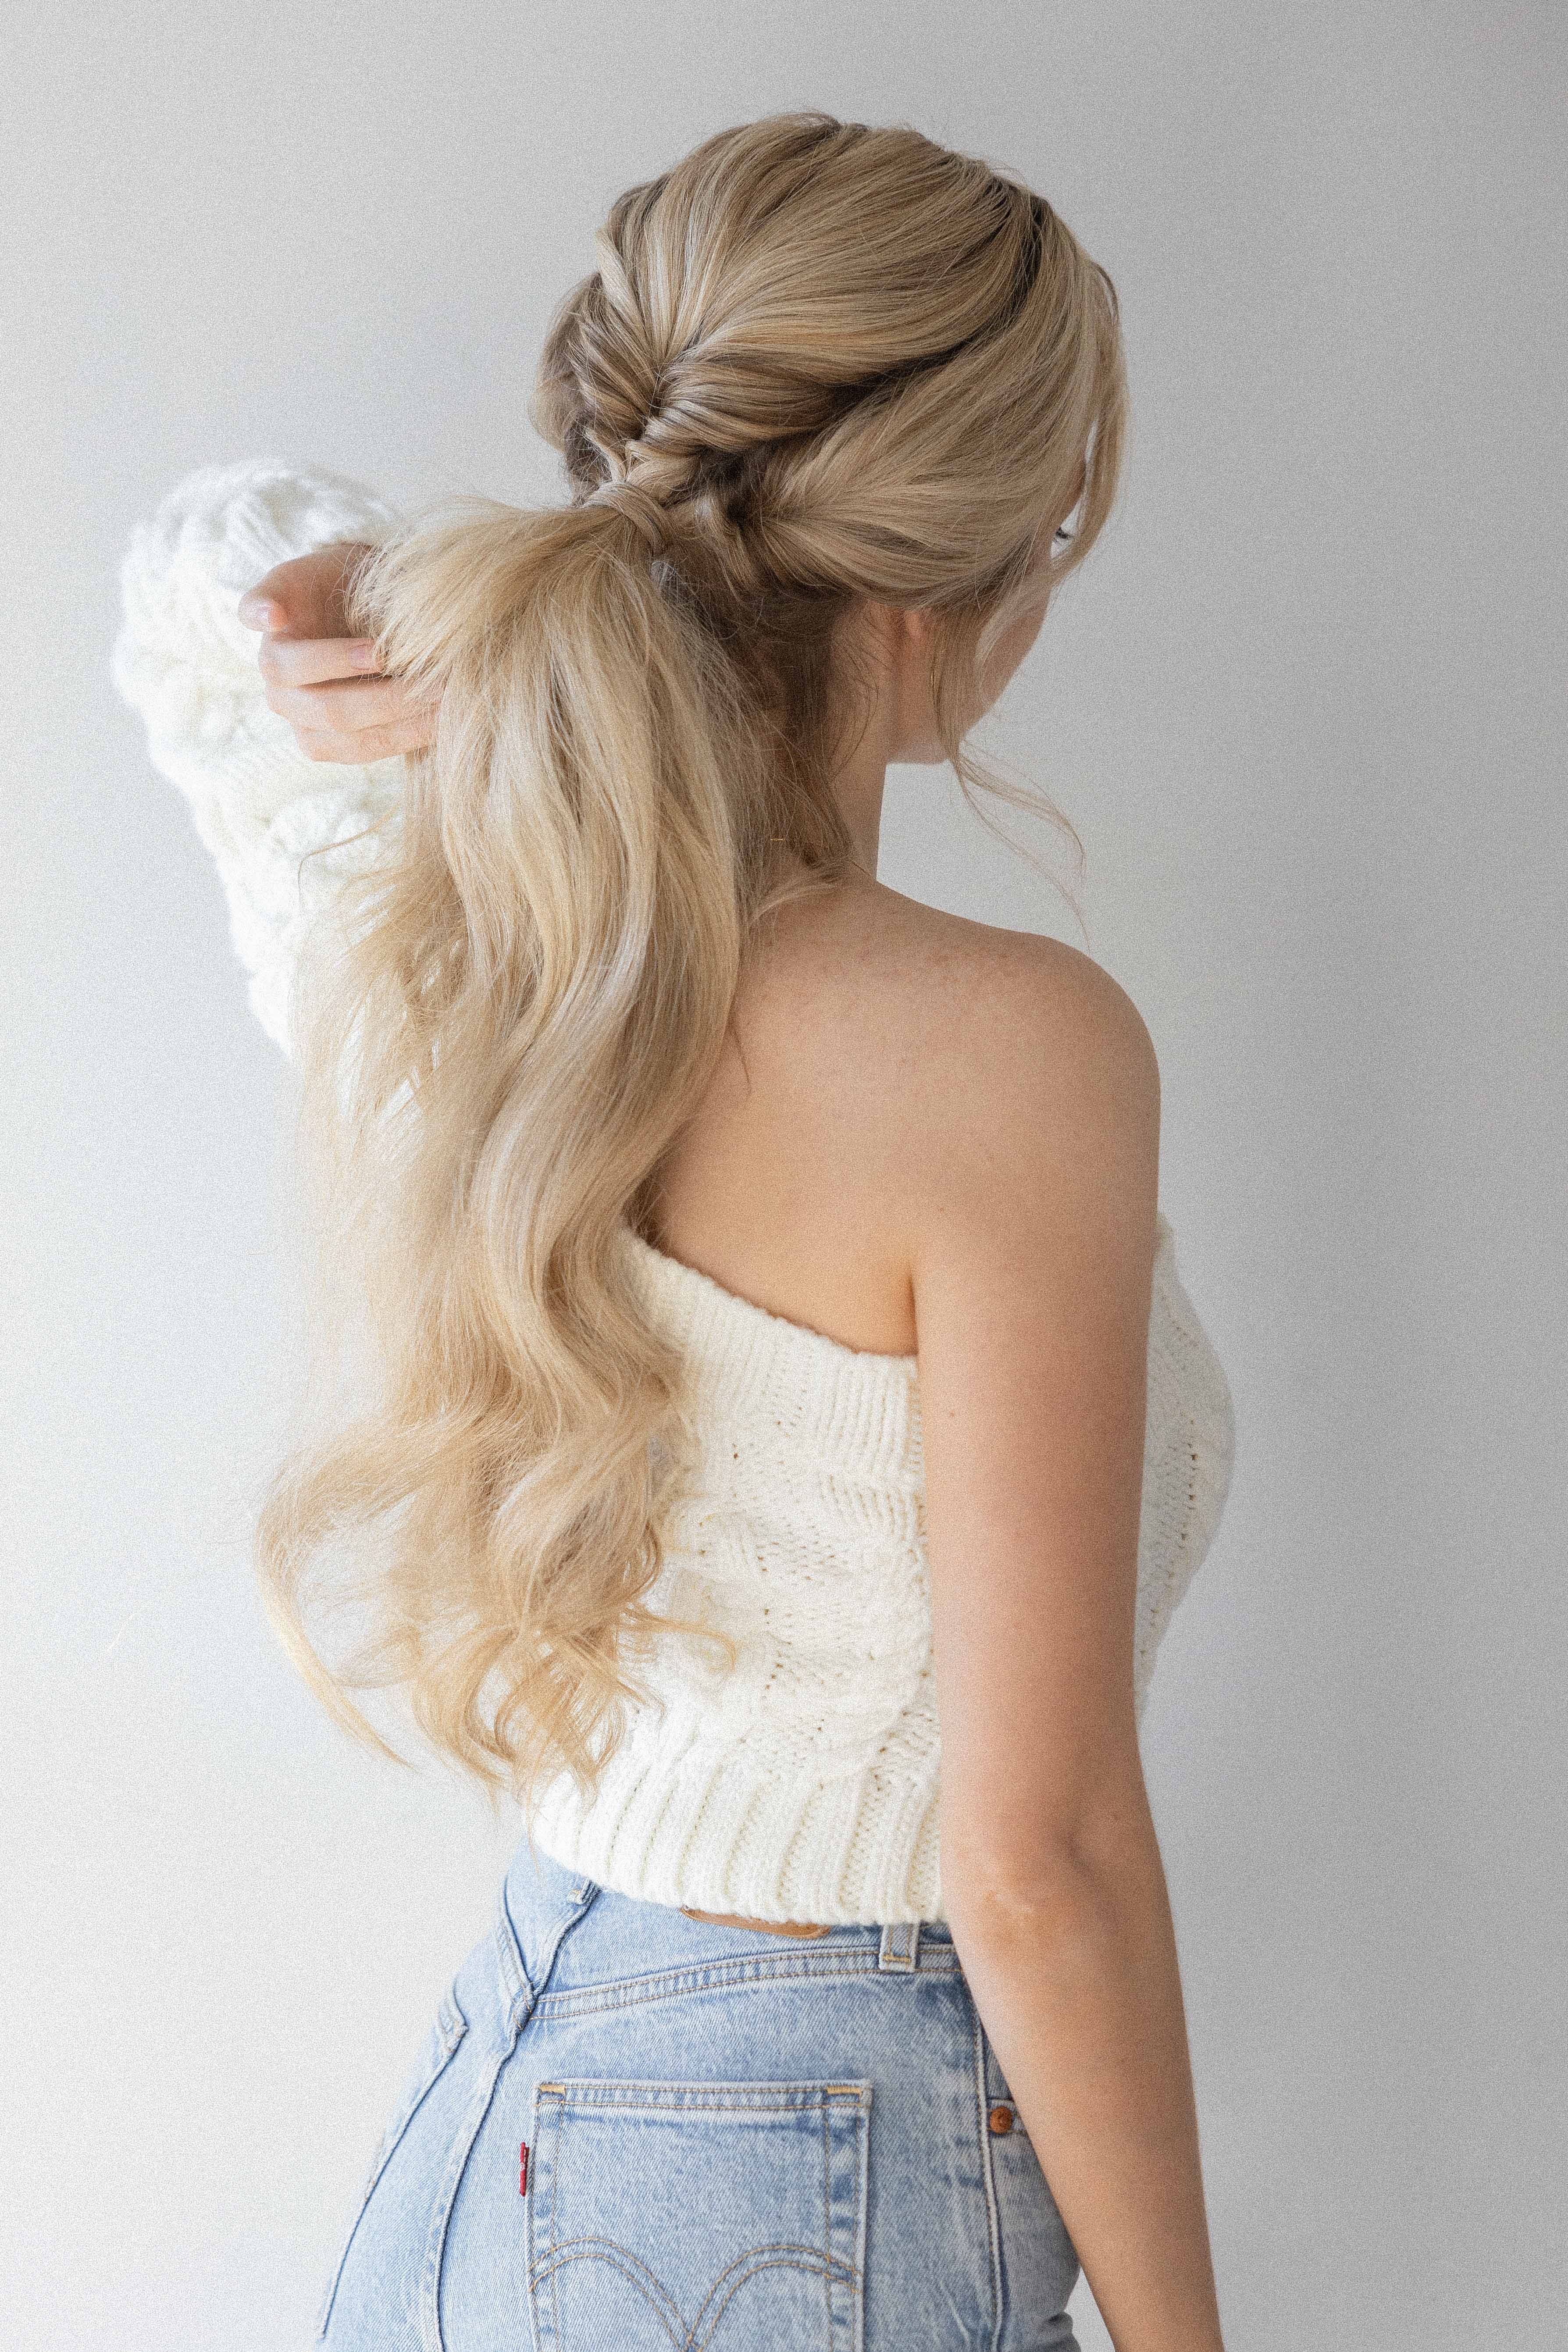 3 QUICK AND EASY PONYTAIL HAIRSTYLES | Long Hair Hairstyles Alex Gaboury